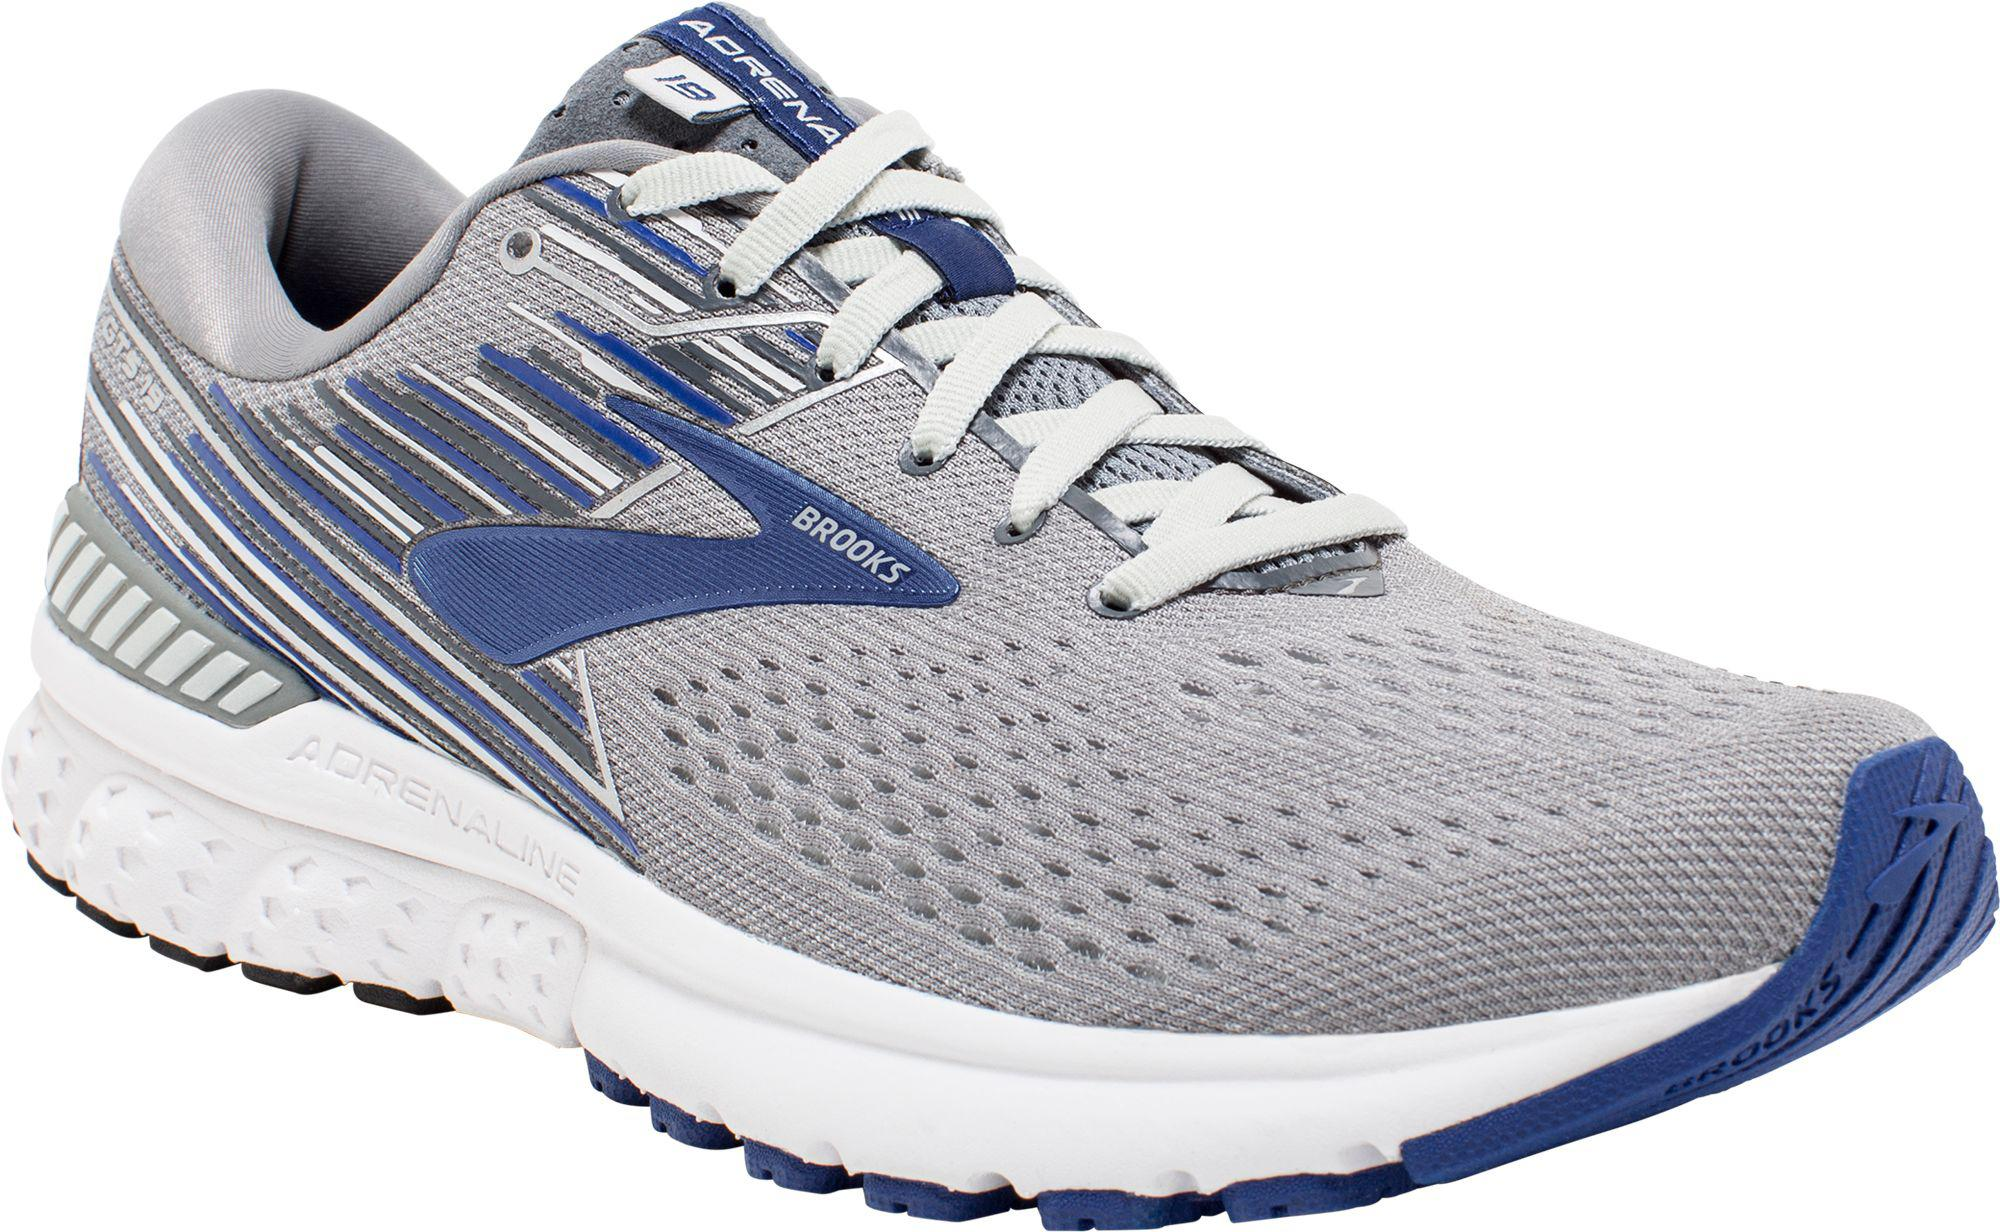 498329c63a0ae Lyst - Brooks Adrenaline Gts 19 Running Shoes in Blue for Men